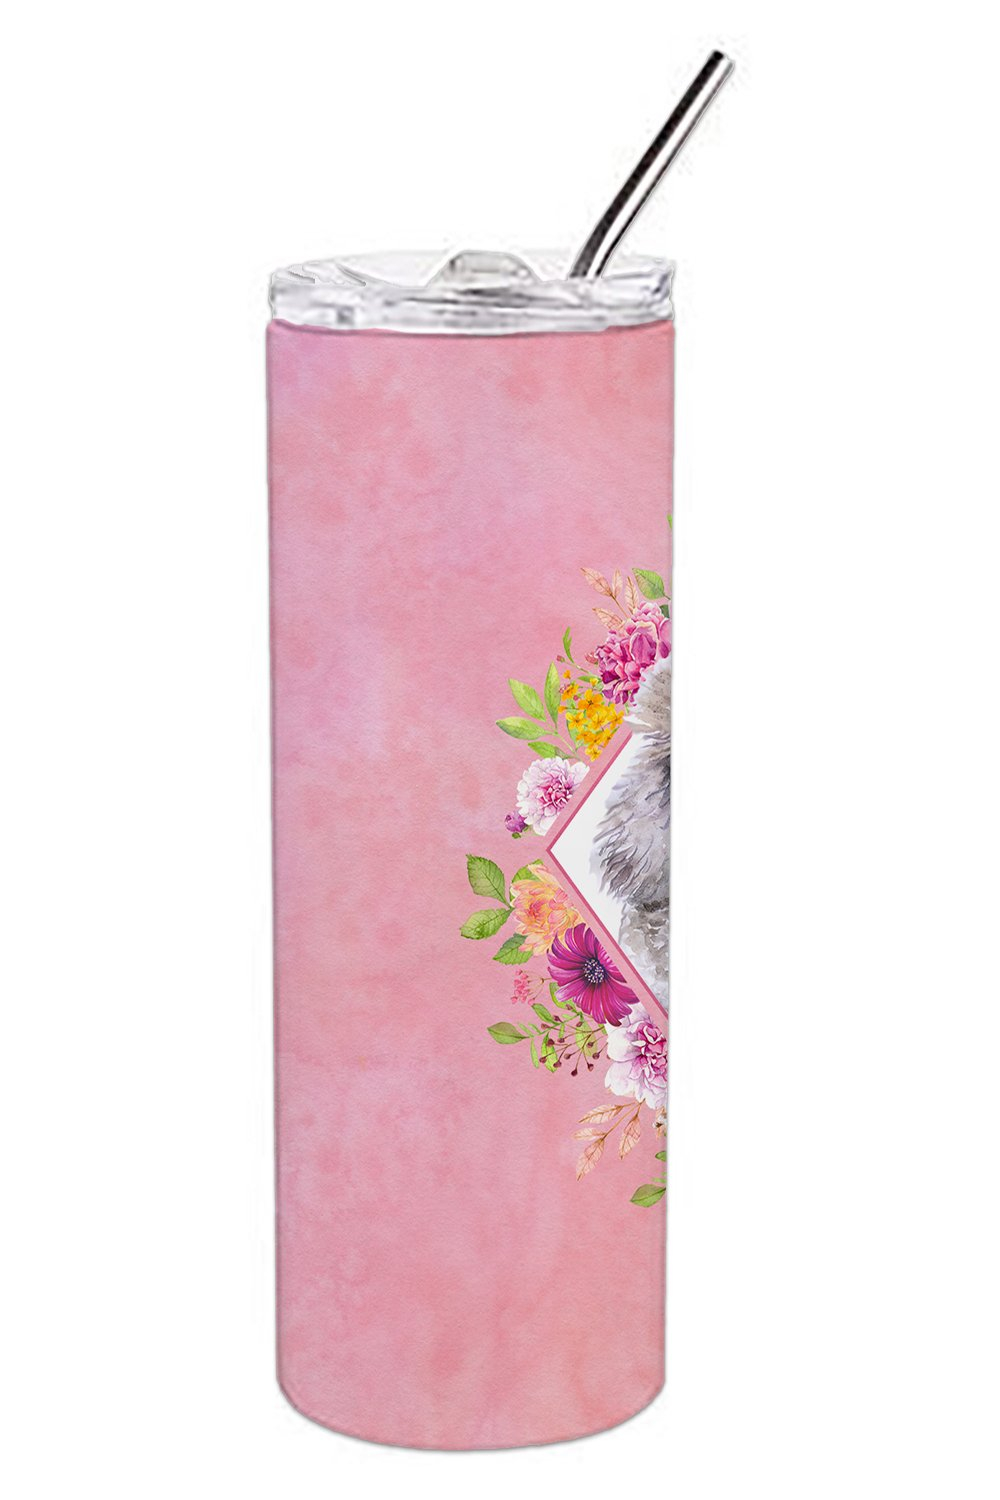 Standard Grey Poodle Pink Flowers Double Walled Stainless Steel 20 oz Skinny Tumbler CK4173TBL20 by Caroline's Treasures